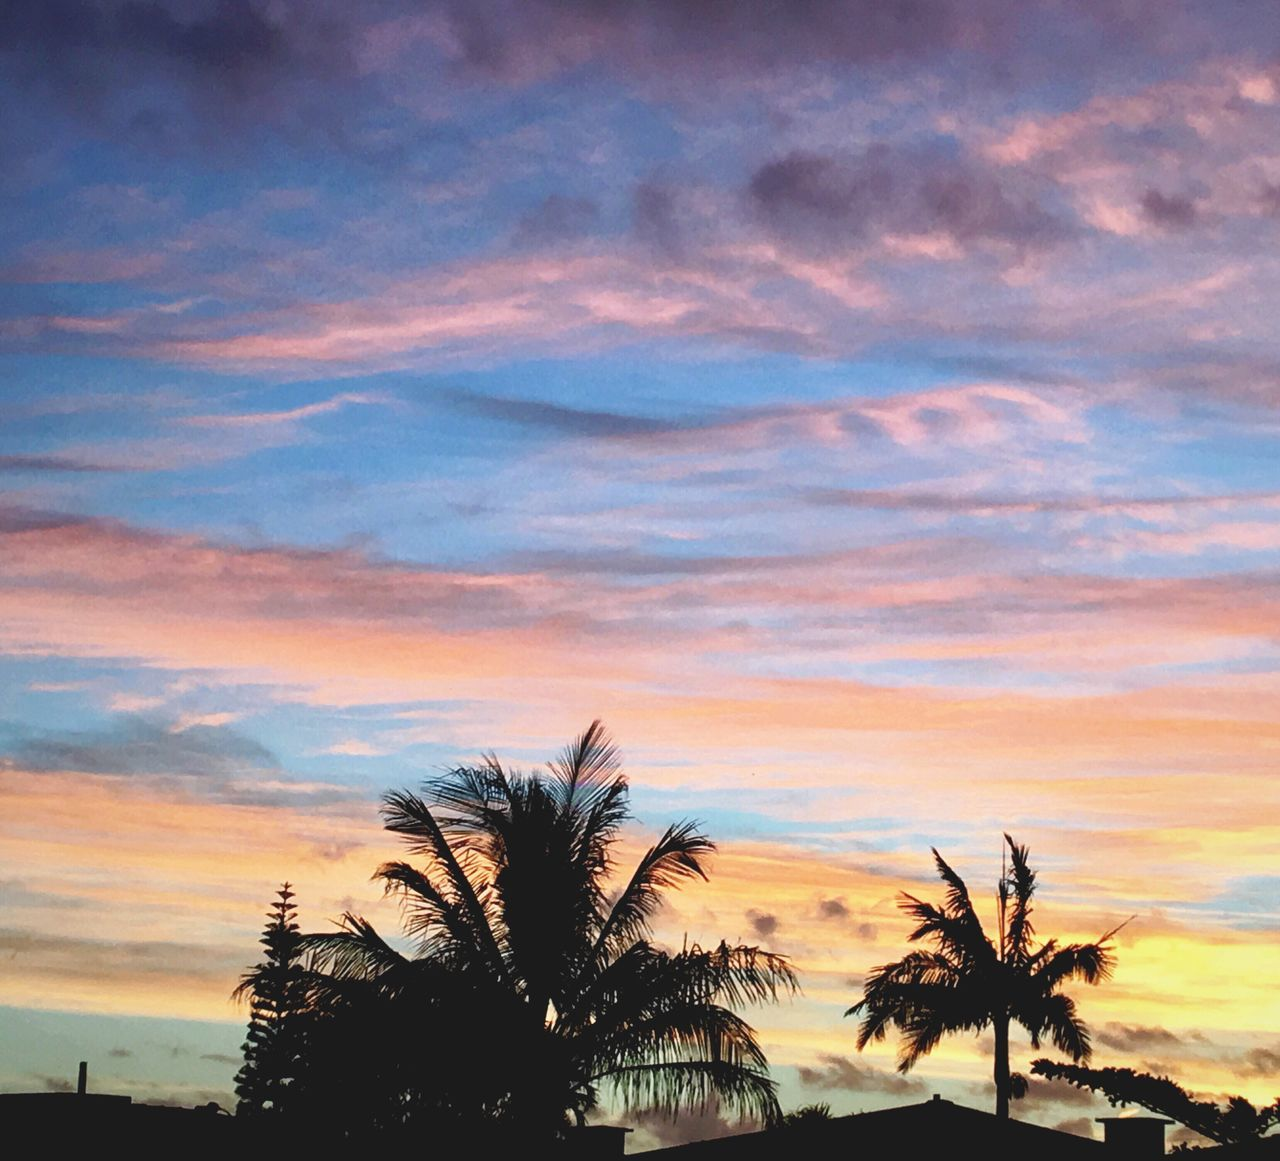 Sky Sunset Cloud - Sky Scenics Nature Tree Beauty In Nature Tranquility Palm Tree No People Tranquil Scene Outdoors Beach Day Light Brazil Clear Sky EyeEm Gallery EyeEm Eye4photography  Cityscape Beauty In Nature Nature Silhouette